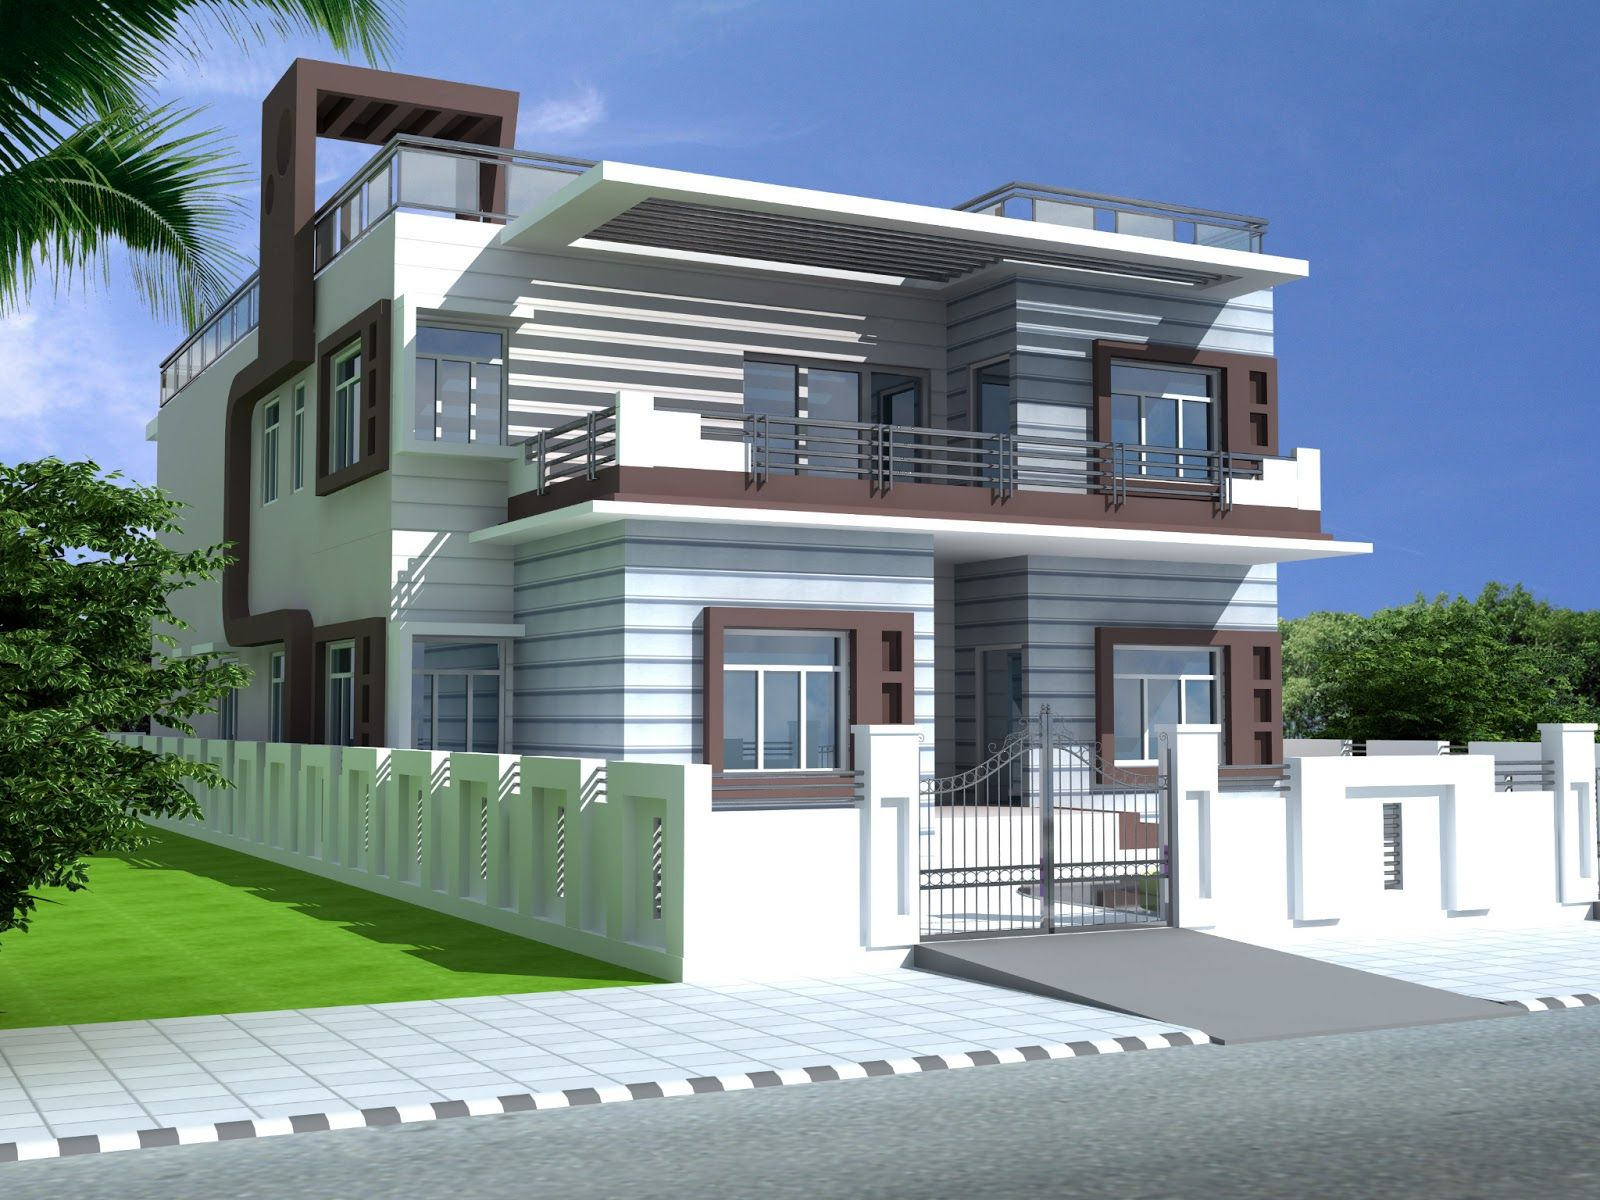 6 bedrooms duplex house design in 390m2 13m x 30m for Duplex house interior designs photos